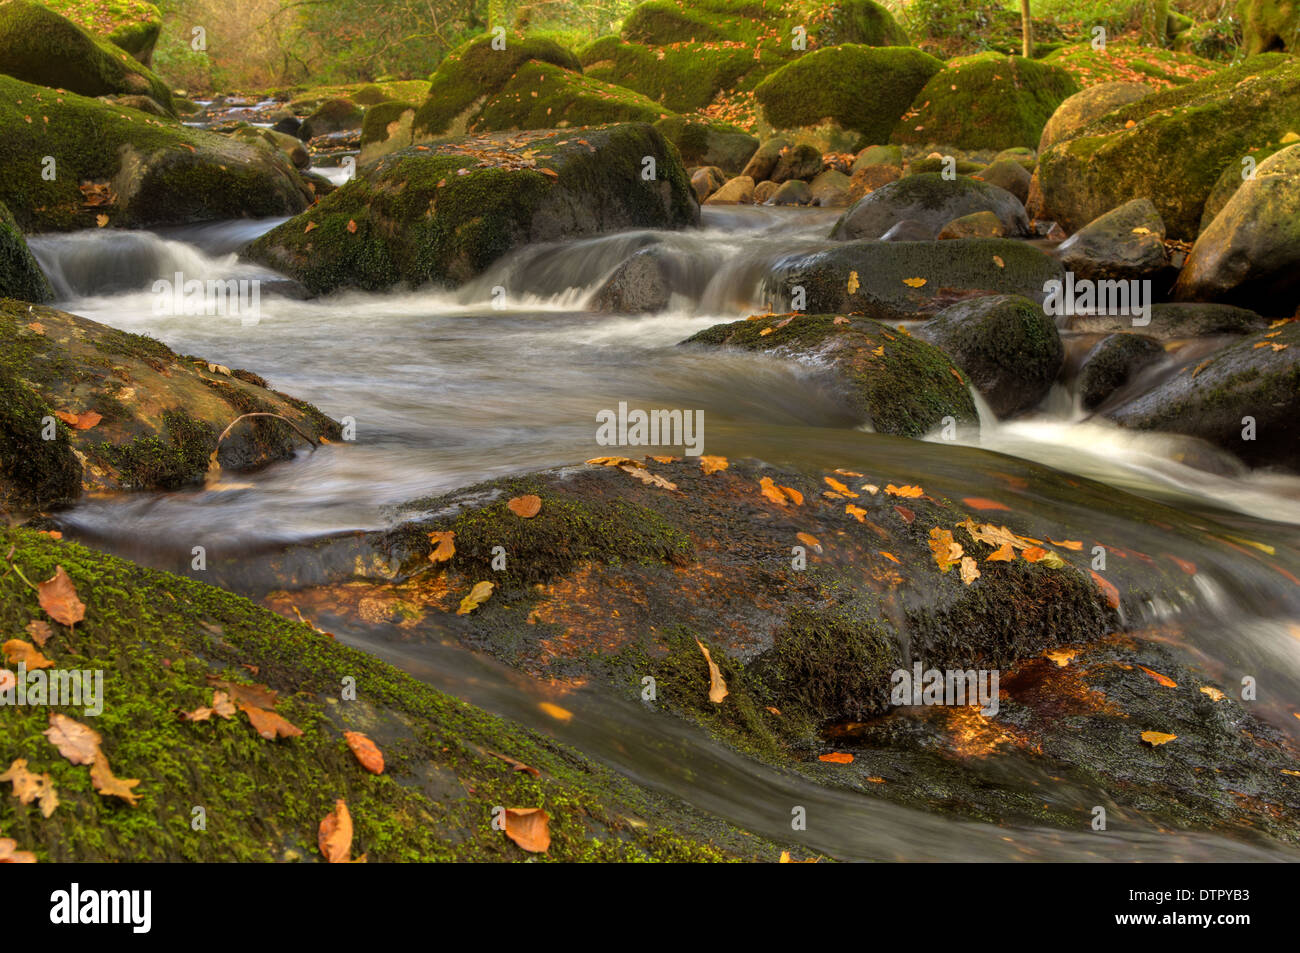 Whitewater rapids in the autumn on the River Aune - Dartmoor National Park Stock Photo